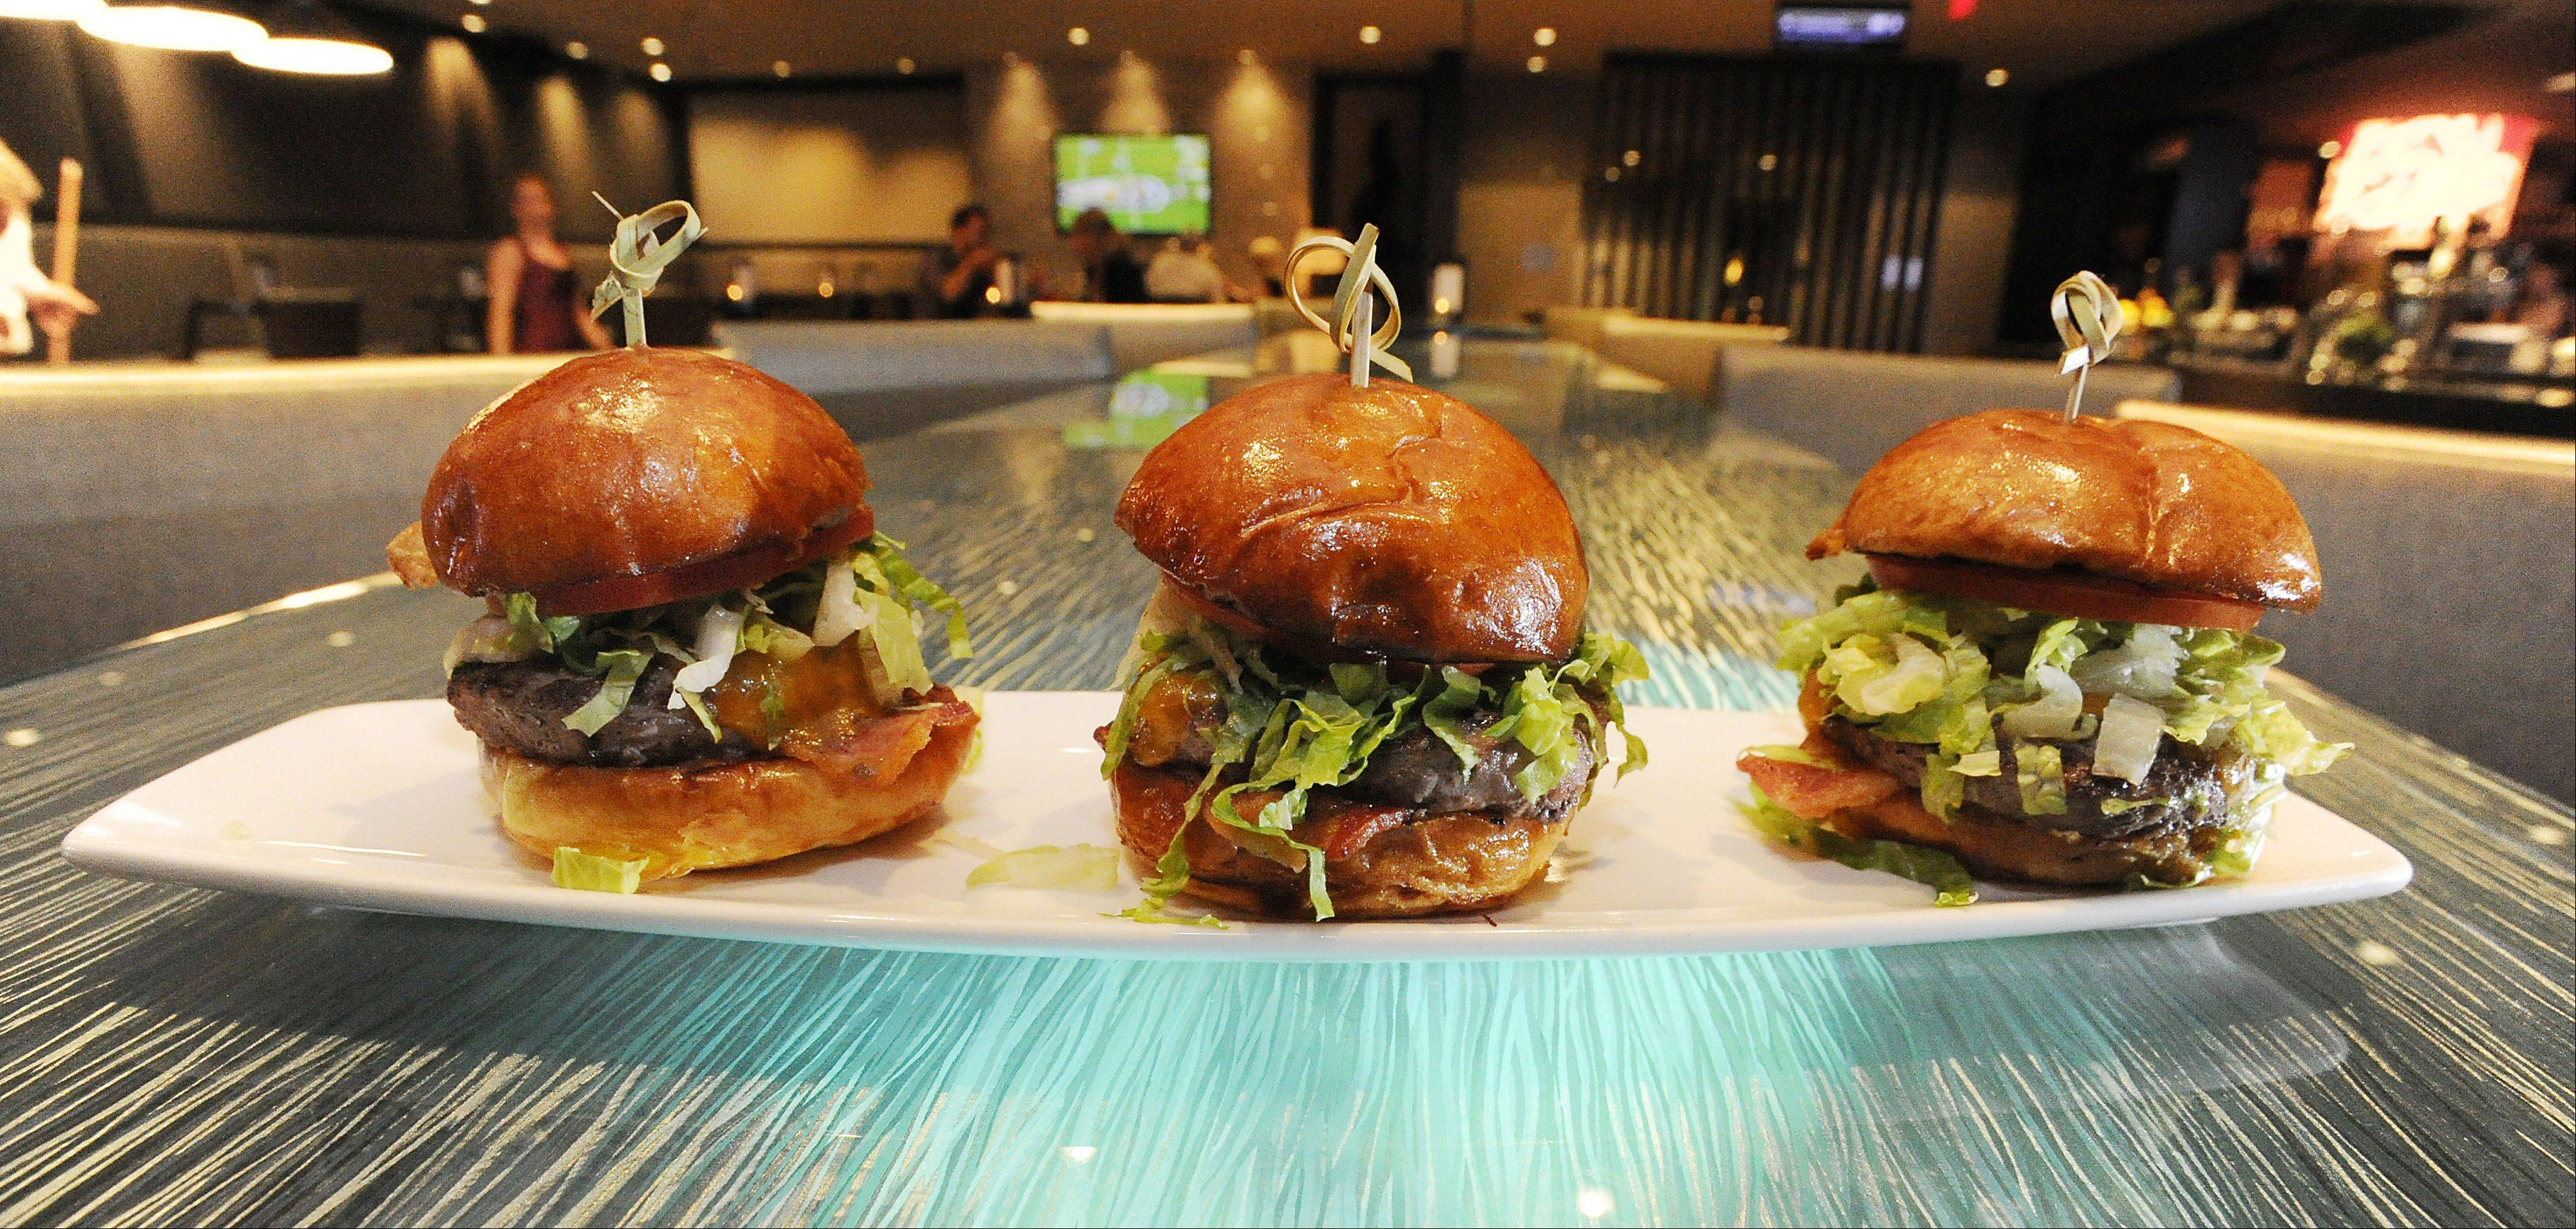 The Angus Burger Trio waits for you at the Salt Sports Bar in South Elgin.